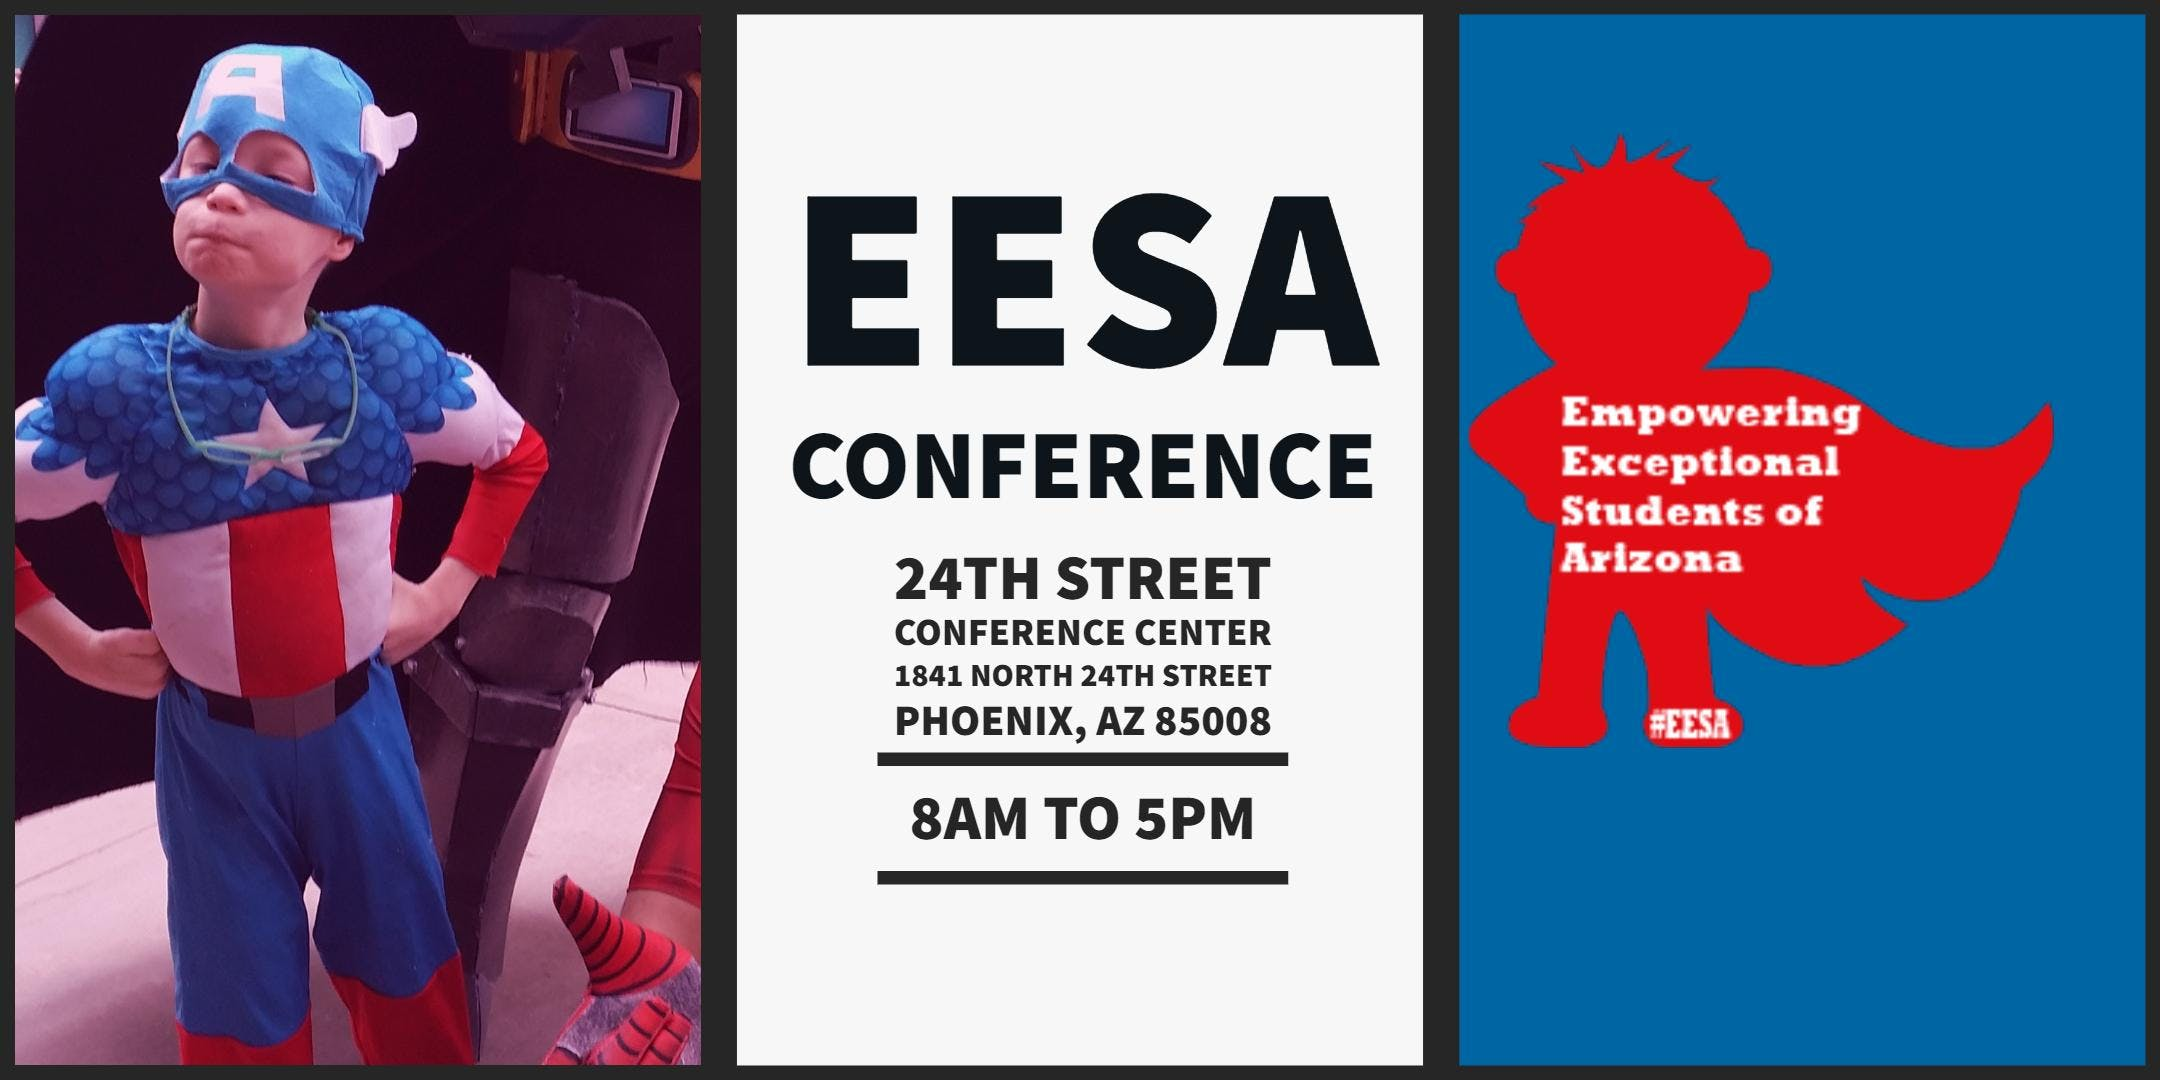 Empowering Exceptional Students of Arizona (EESA) Conference